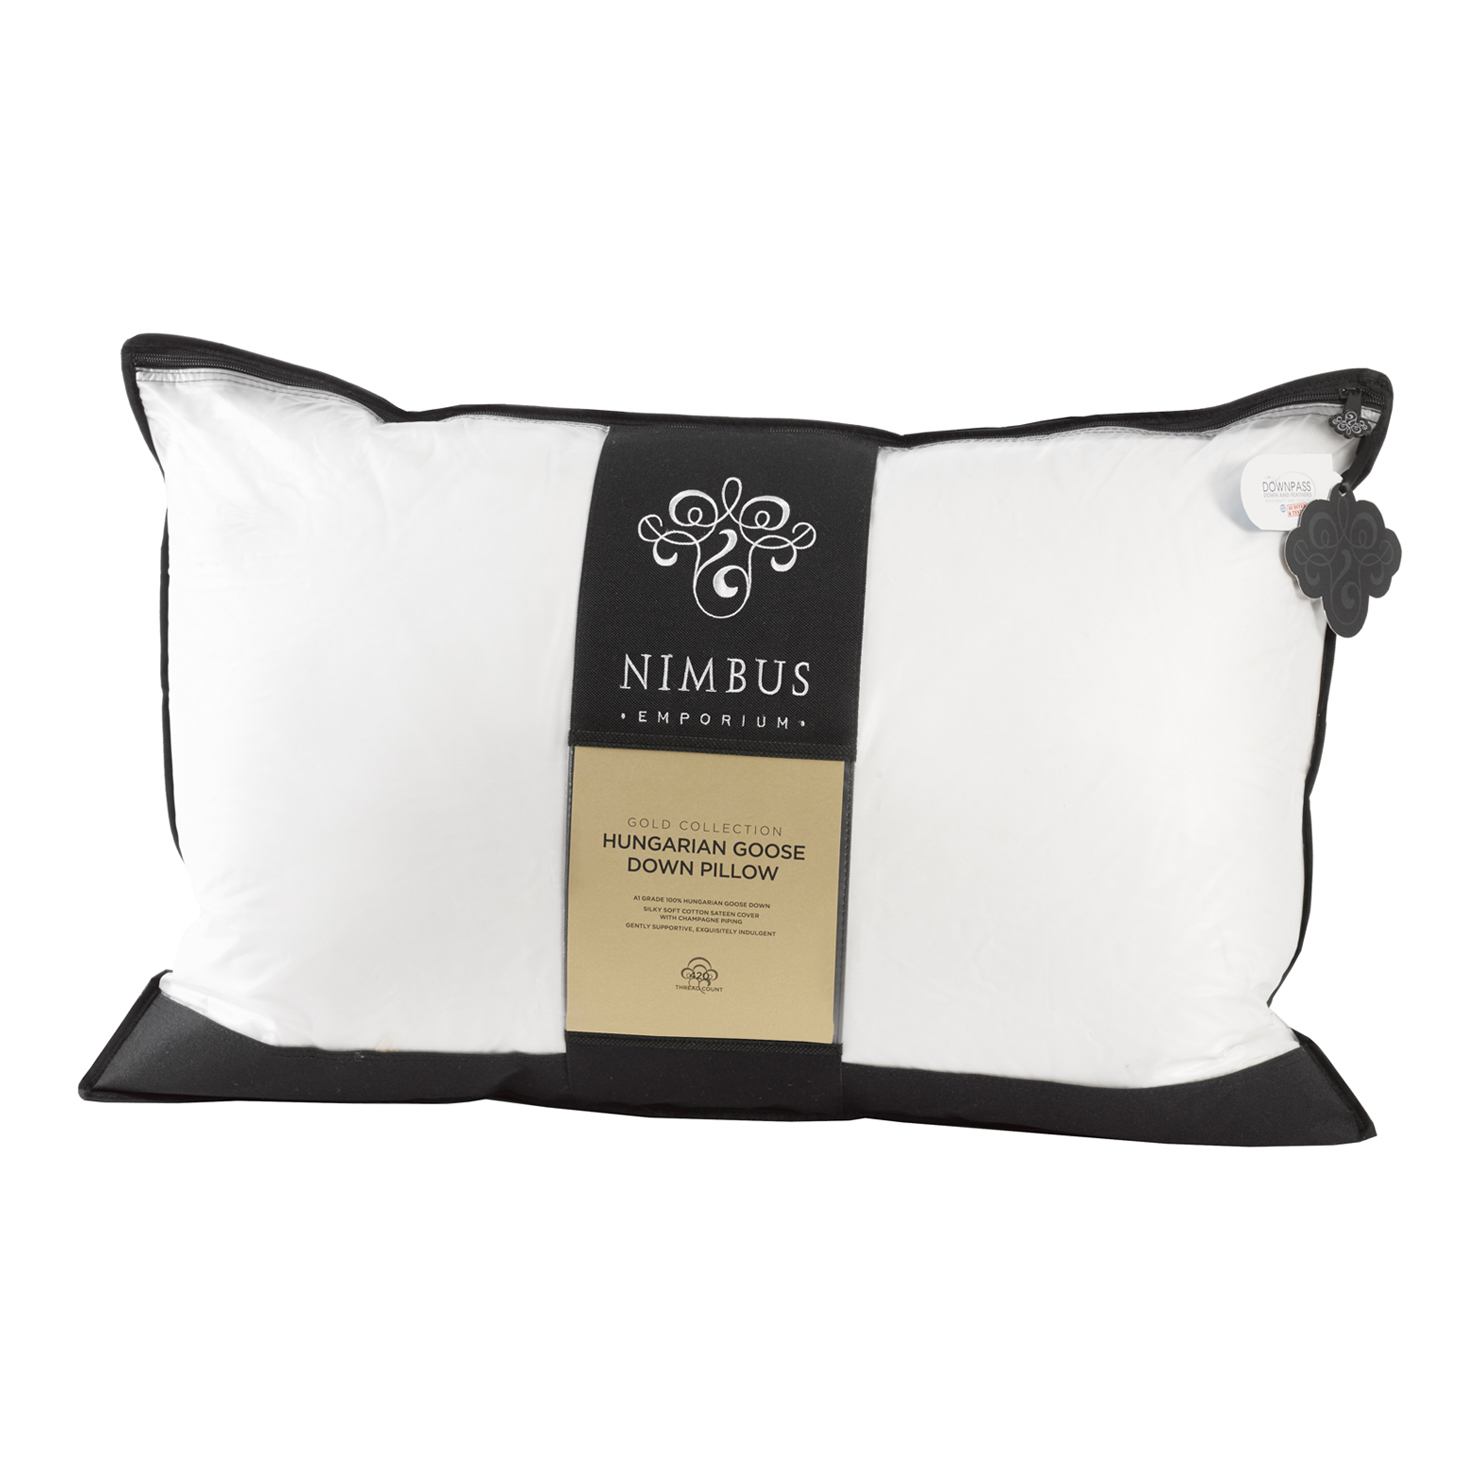 Nimbus Gold 100 Pure Hungarian Goose Down Pillow from